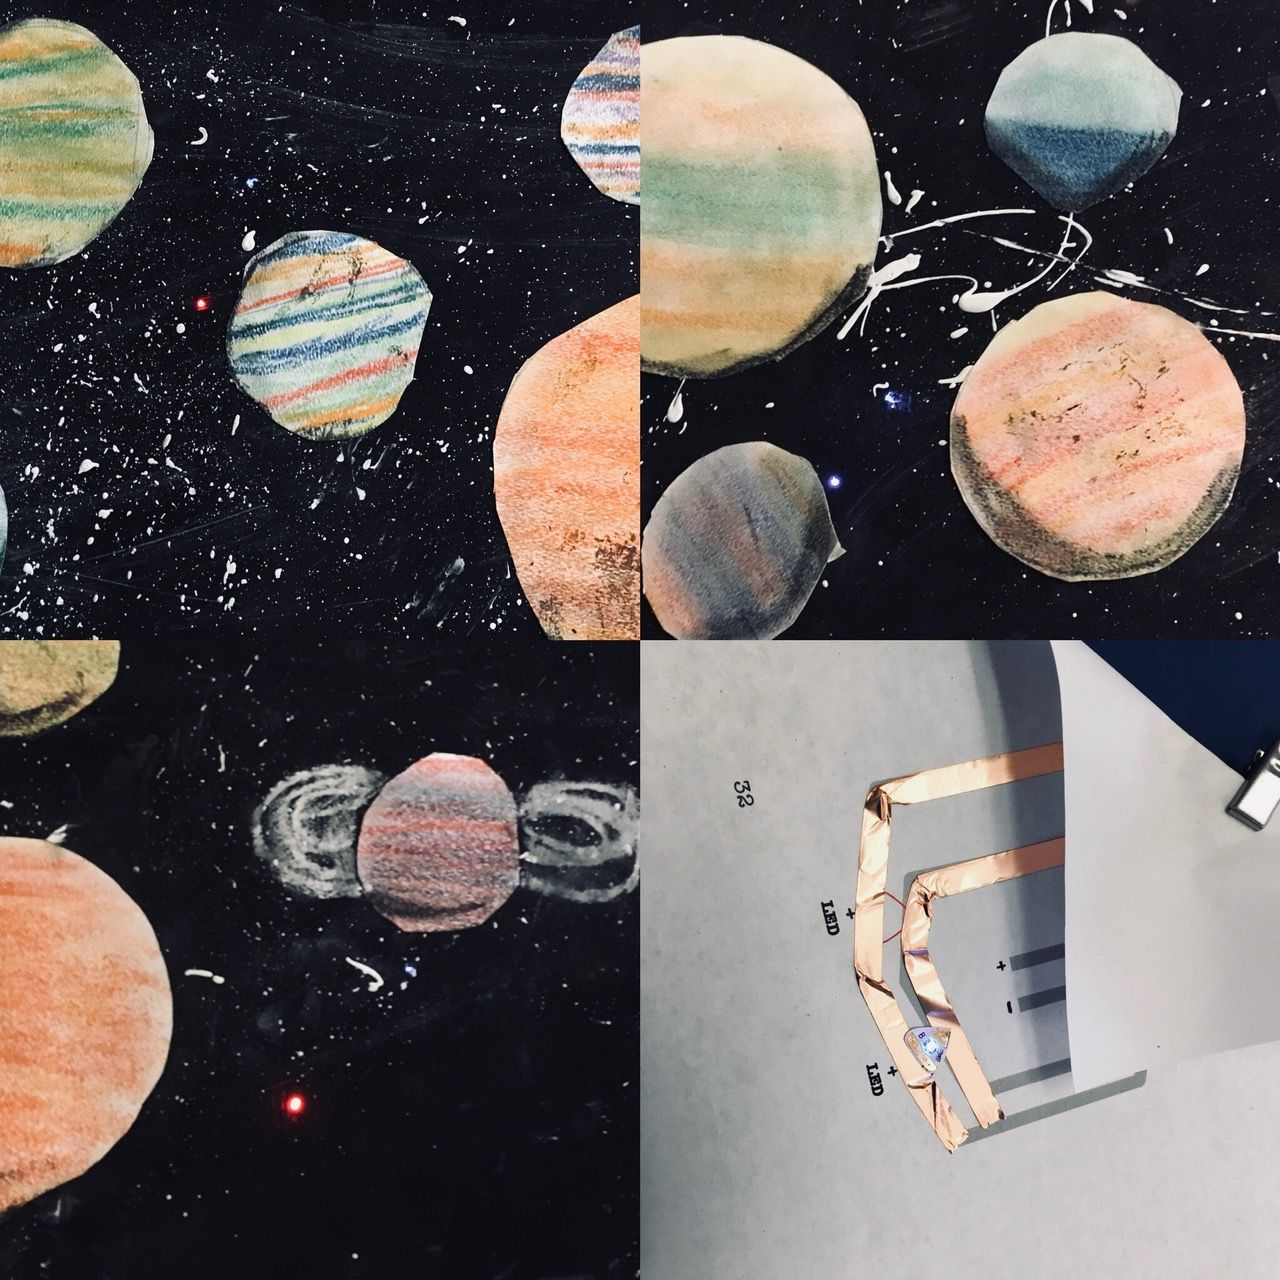 Third Grade Planet Painting Light Up Planets Circuits With Chibitronics Art Blog 3rd Grade Art Lesson 3rd Grade Art